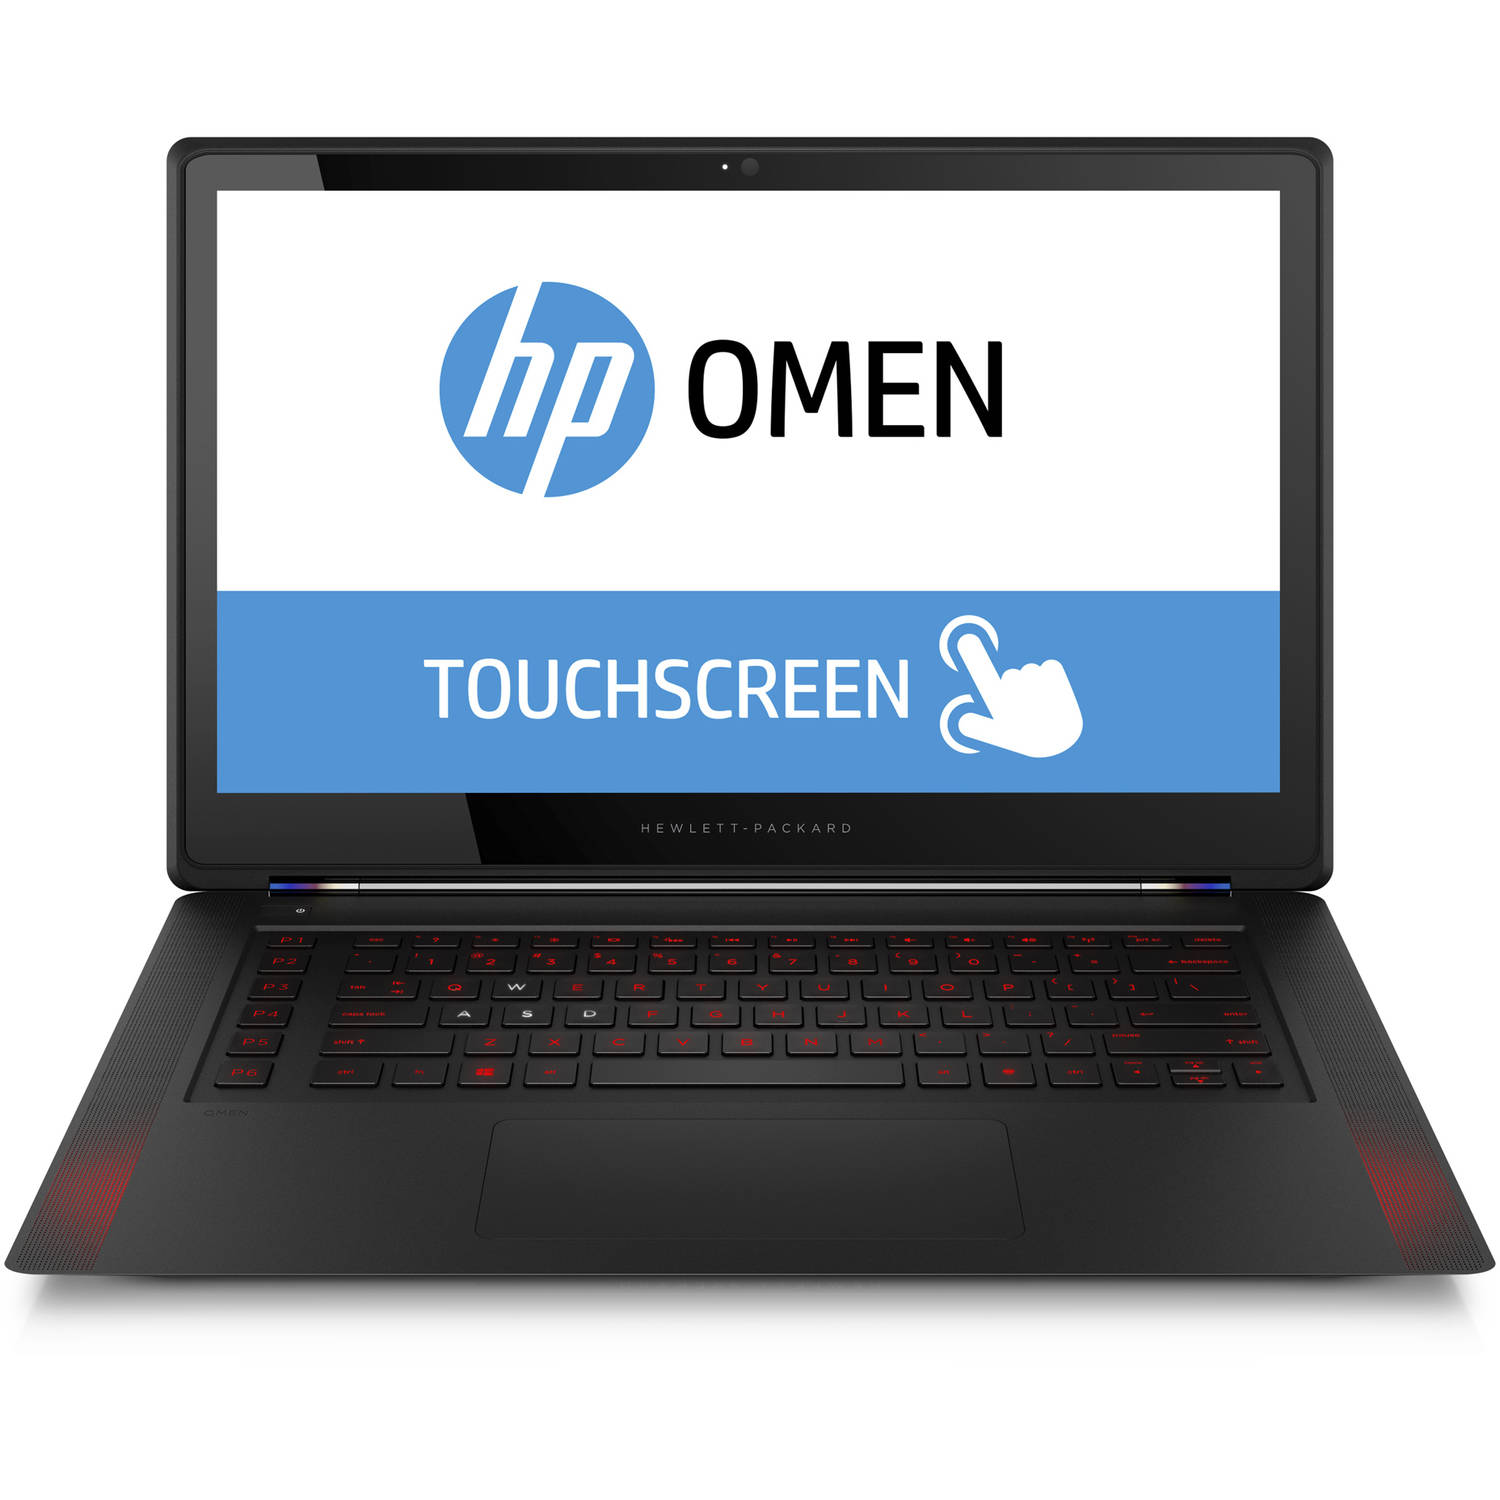 "HP Black 15.6"" Omen 15-5220Nr Laptop PC with Intel Core i7-4720HQ Quad-Core Processor, 16GB Memory, Touchscreen, 512GB SSD and Windows 10 Home"